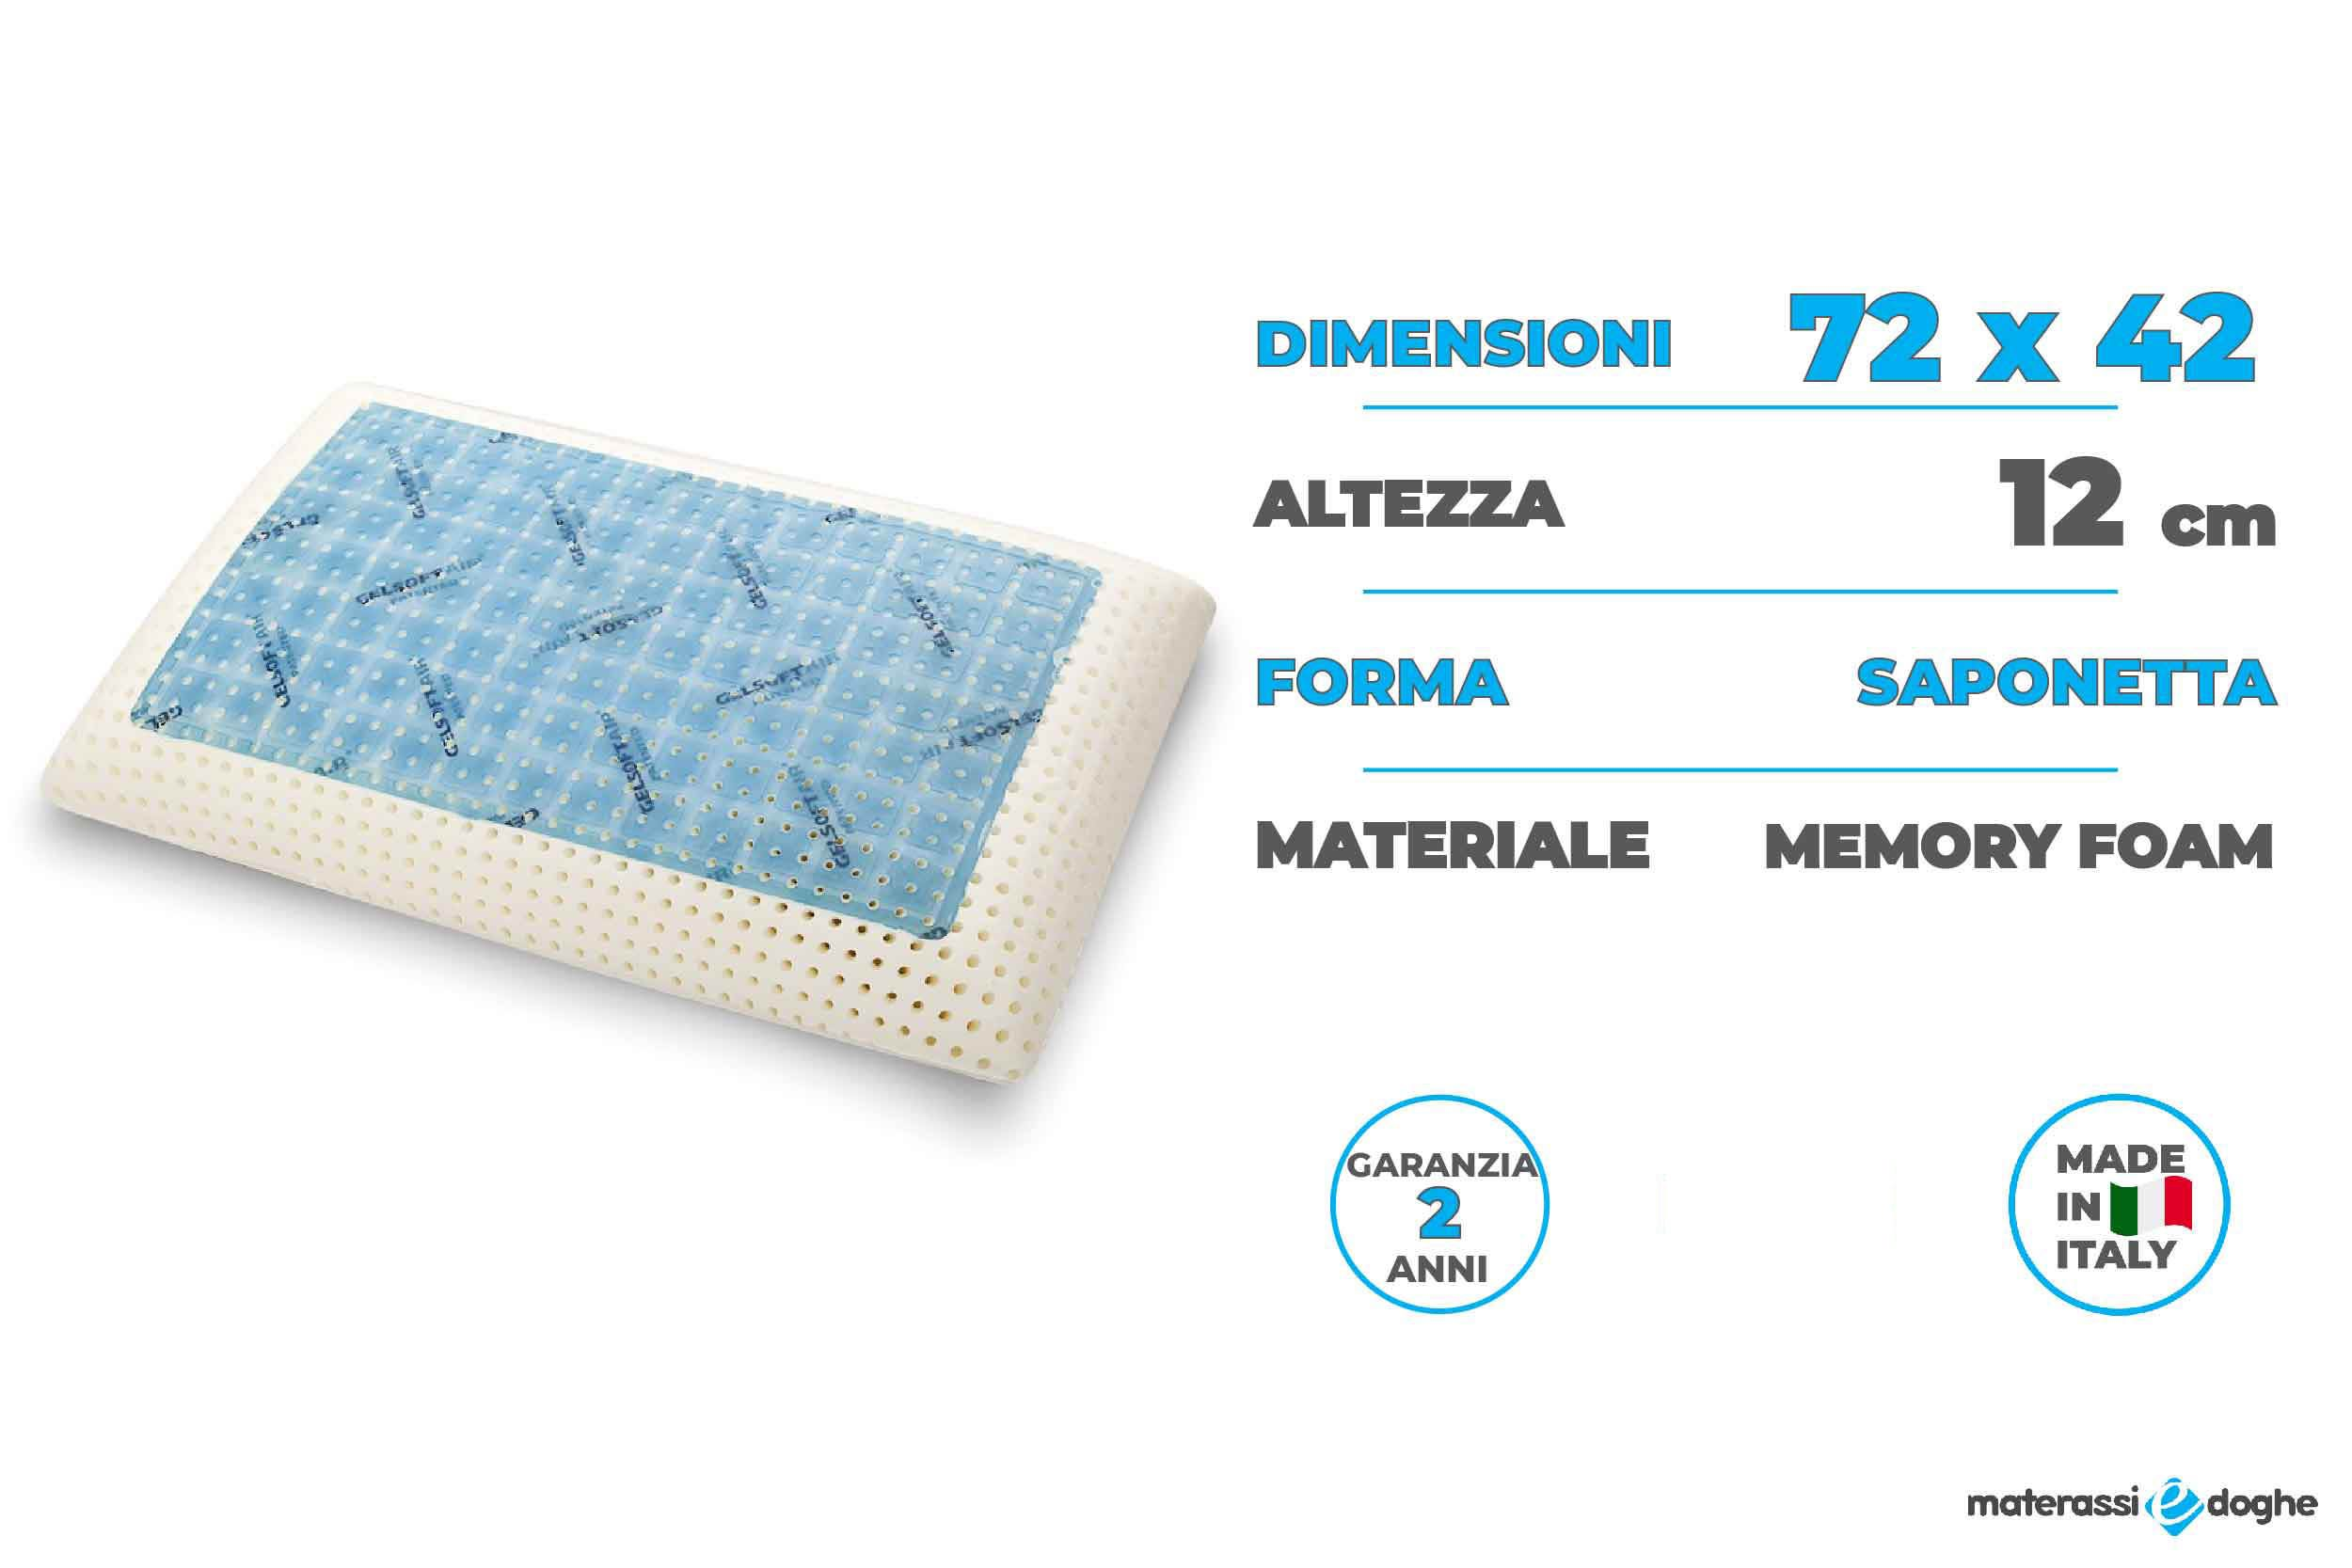 Memory Foam Mattresses And Pillows 100 Made In Italy Materassi E Doghe